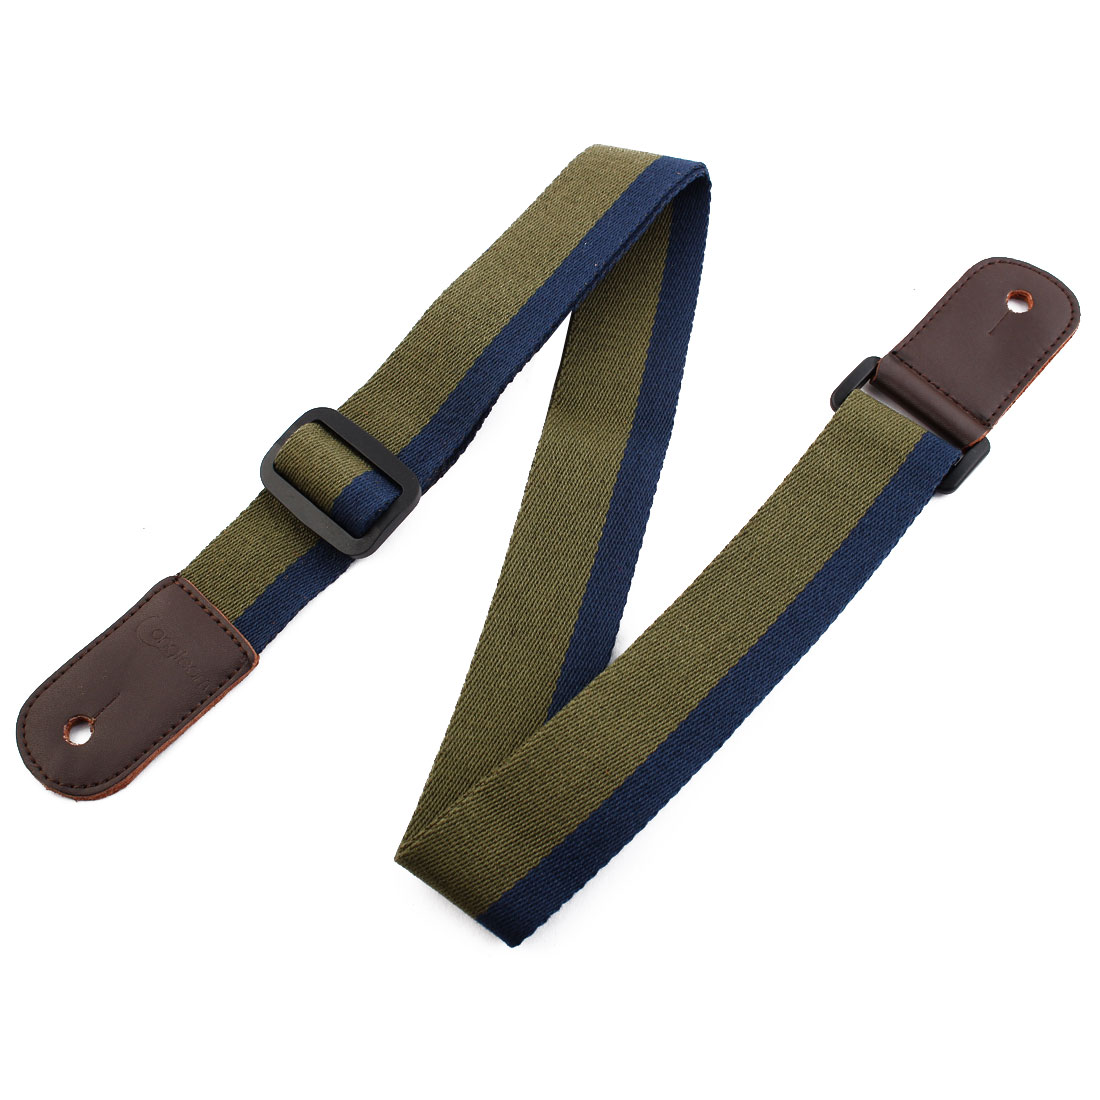 Faux Leather End Adjustable Guitar Shoulder Strap Bass Belt Army Green Dark Blue